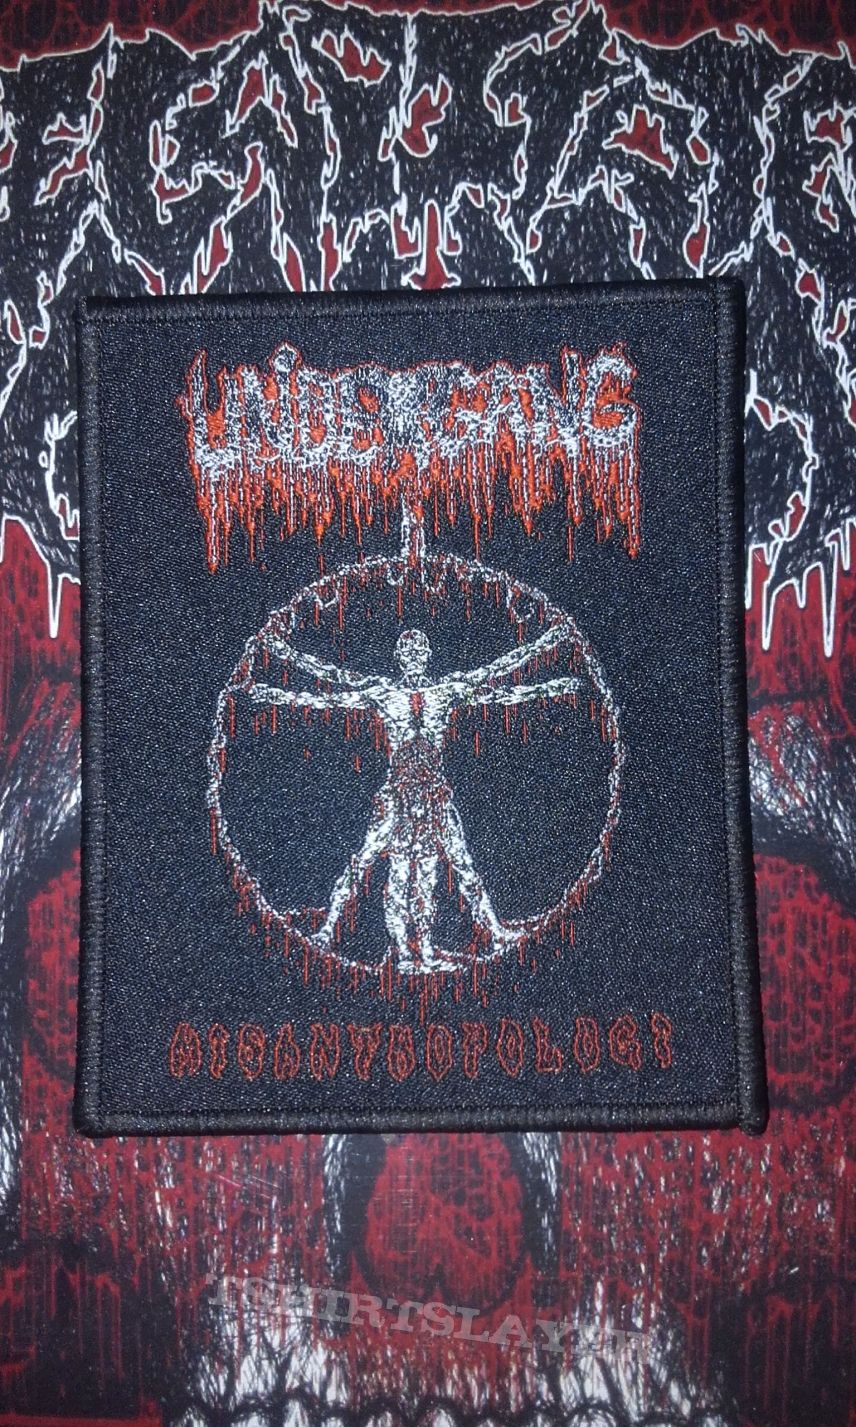 Misantropologi patch